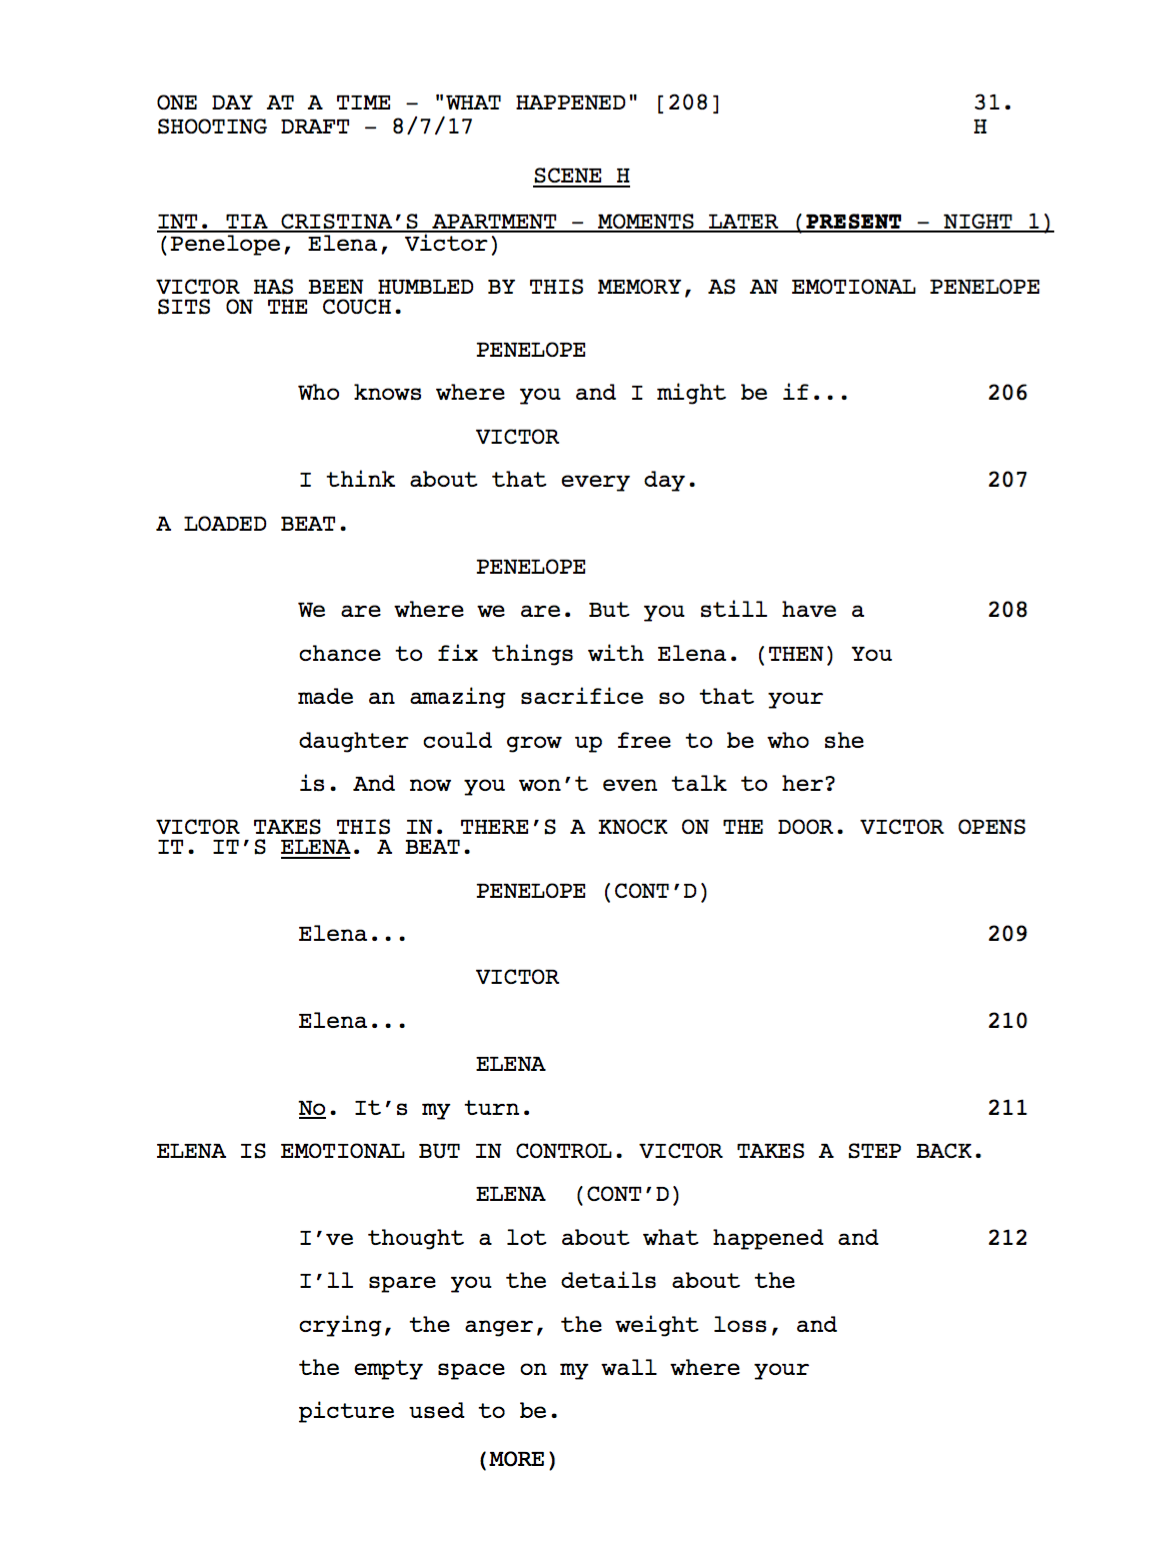 A peek at the script from